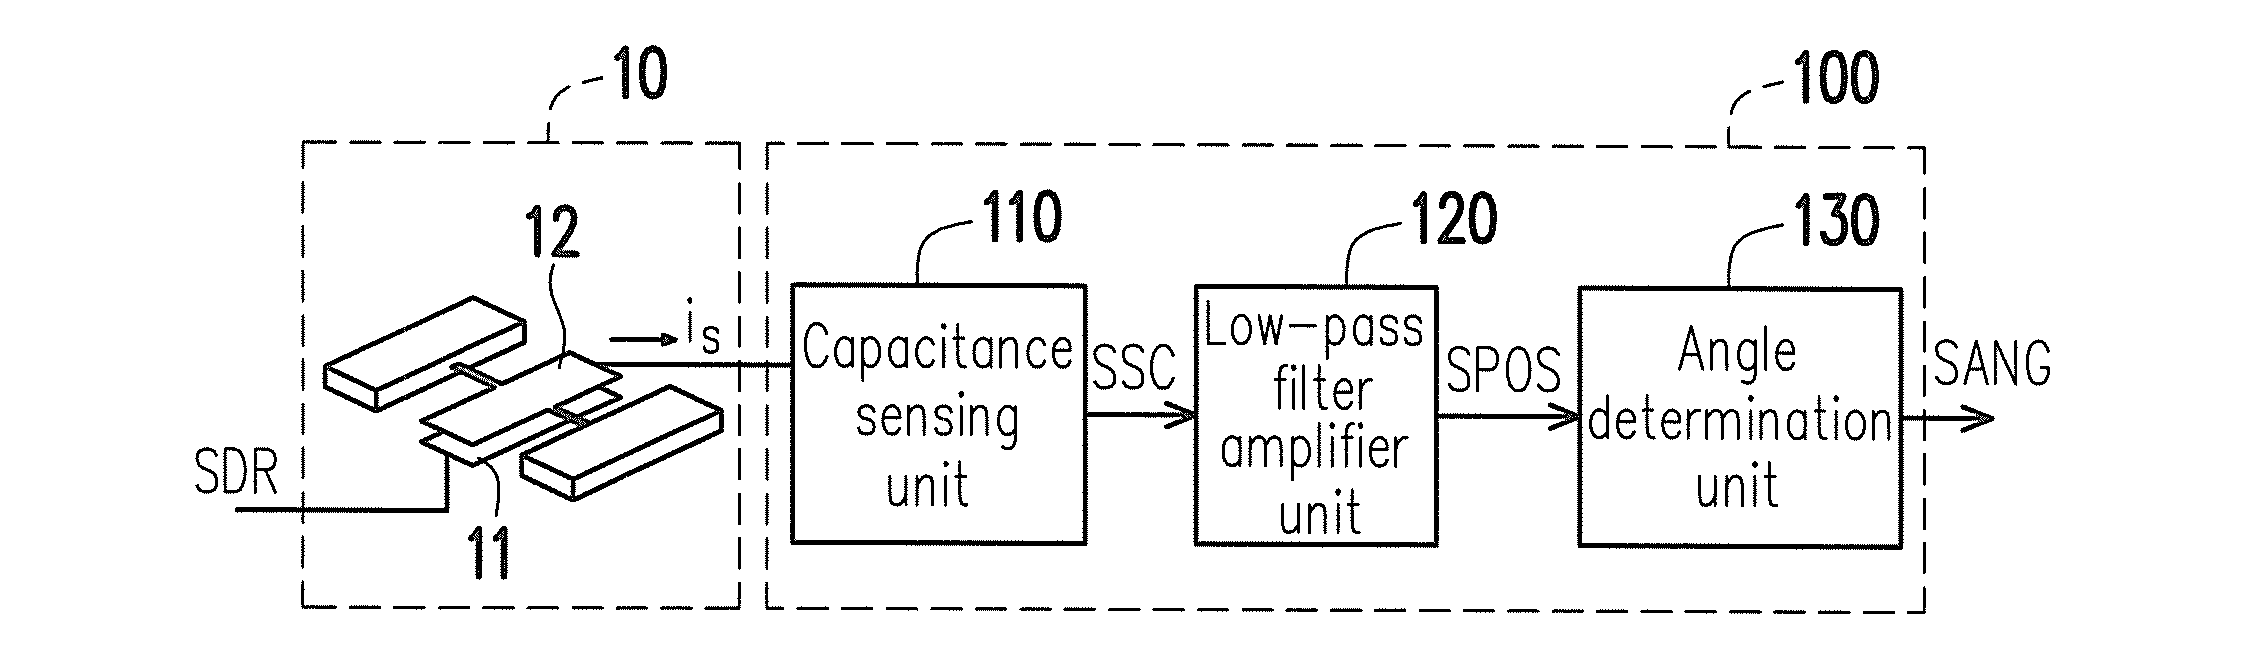 Analytics For Us Patent Application No 2015 0185051 Angle Low Pass Filter Diagram To The Amplifier Unit Receiving Position Signal And Determines A Rotation Of Mirror Electrode Electrostatic